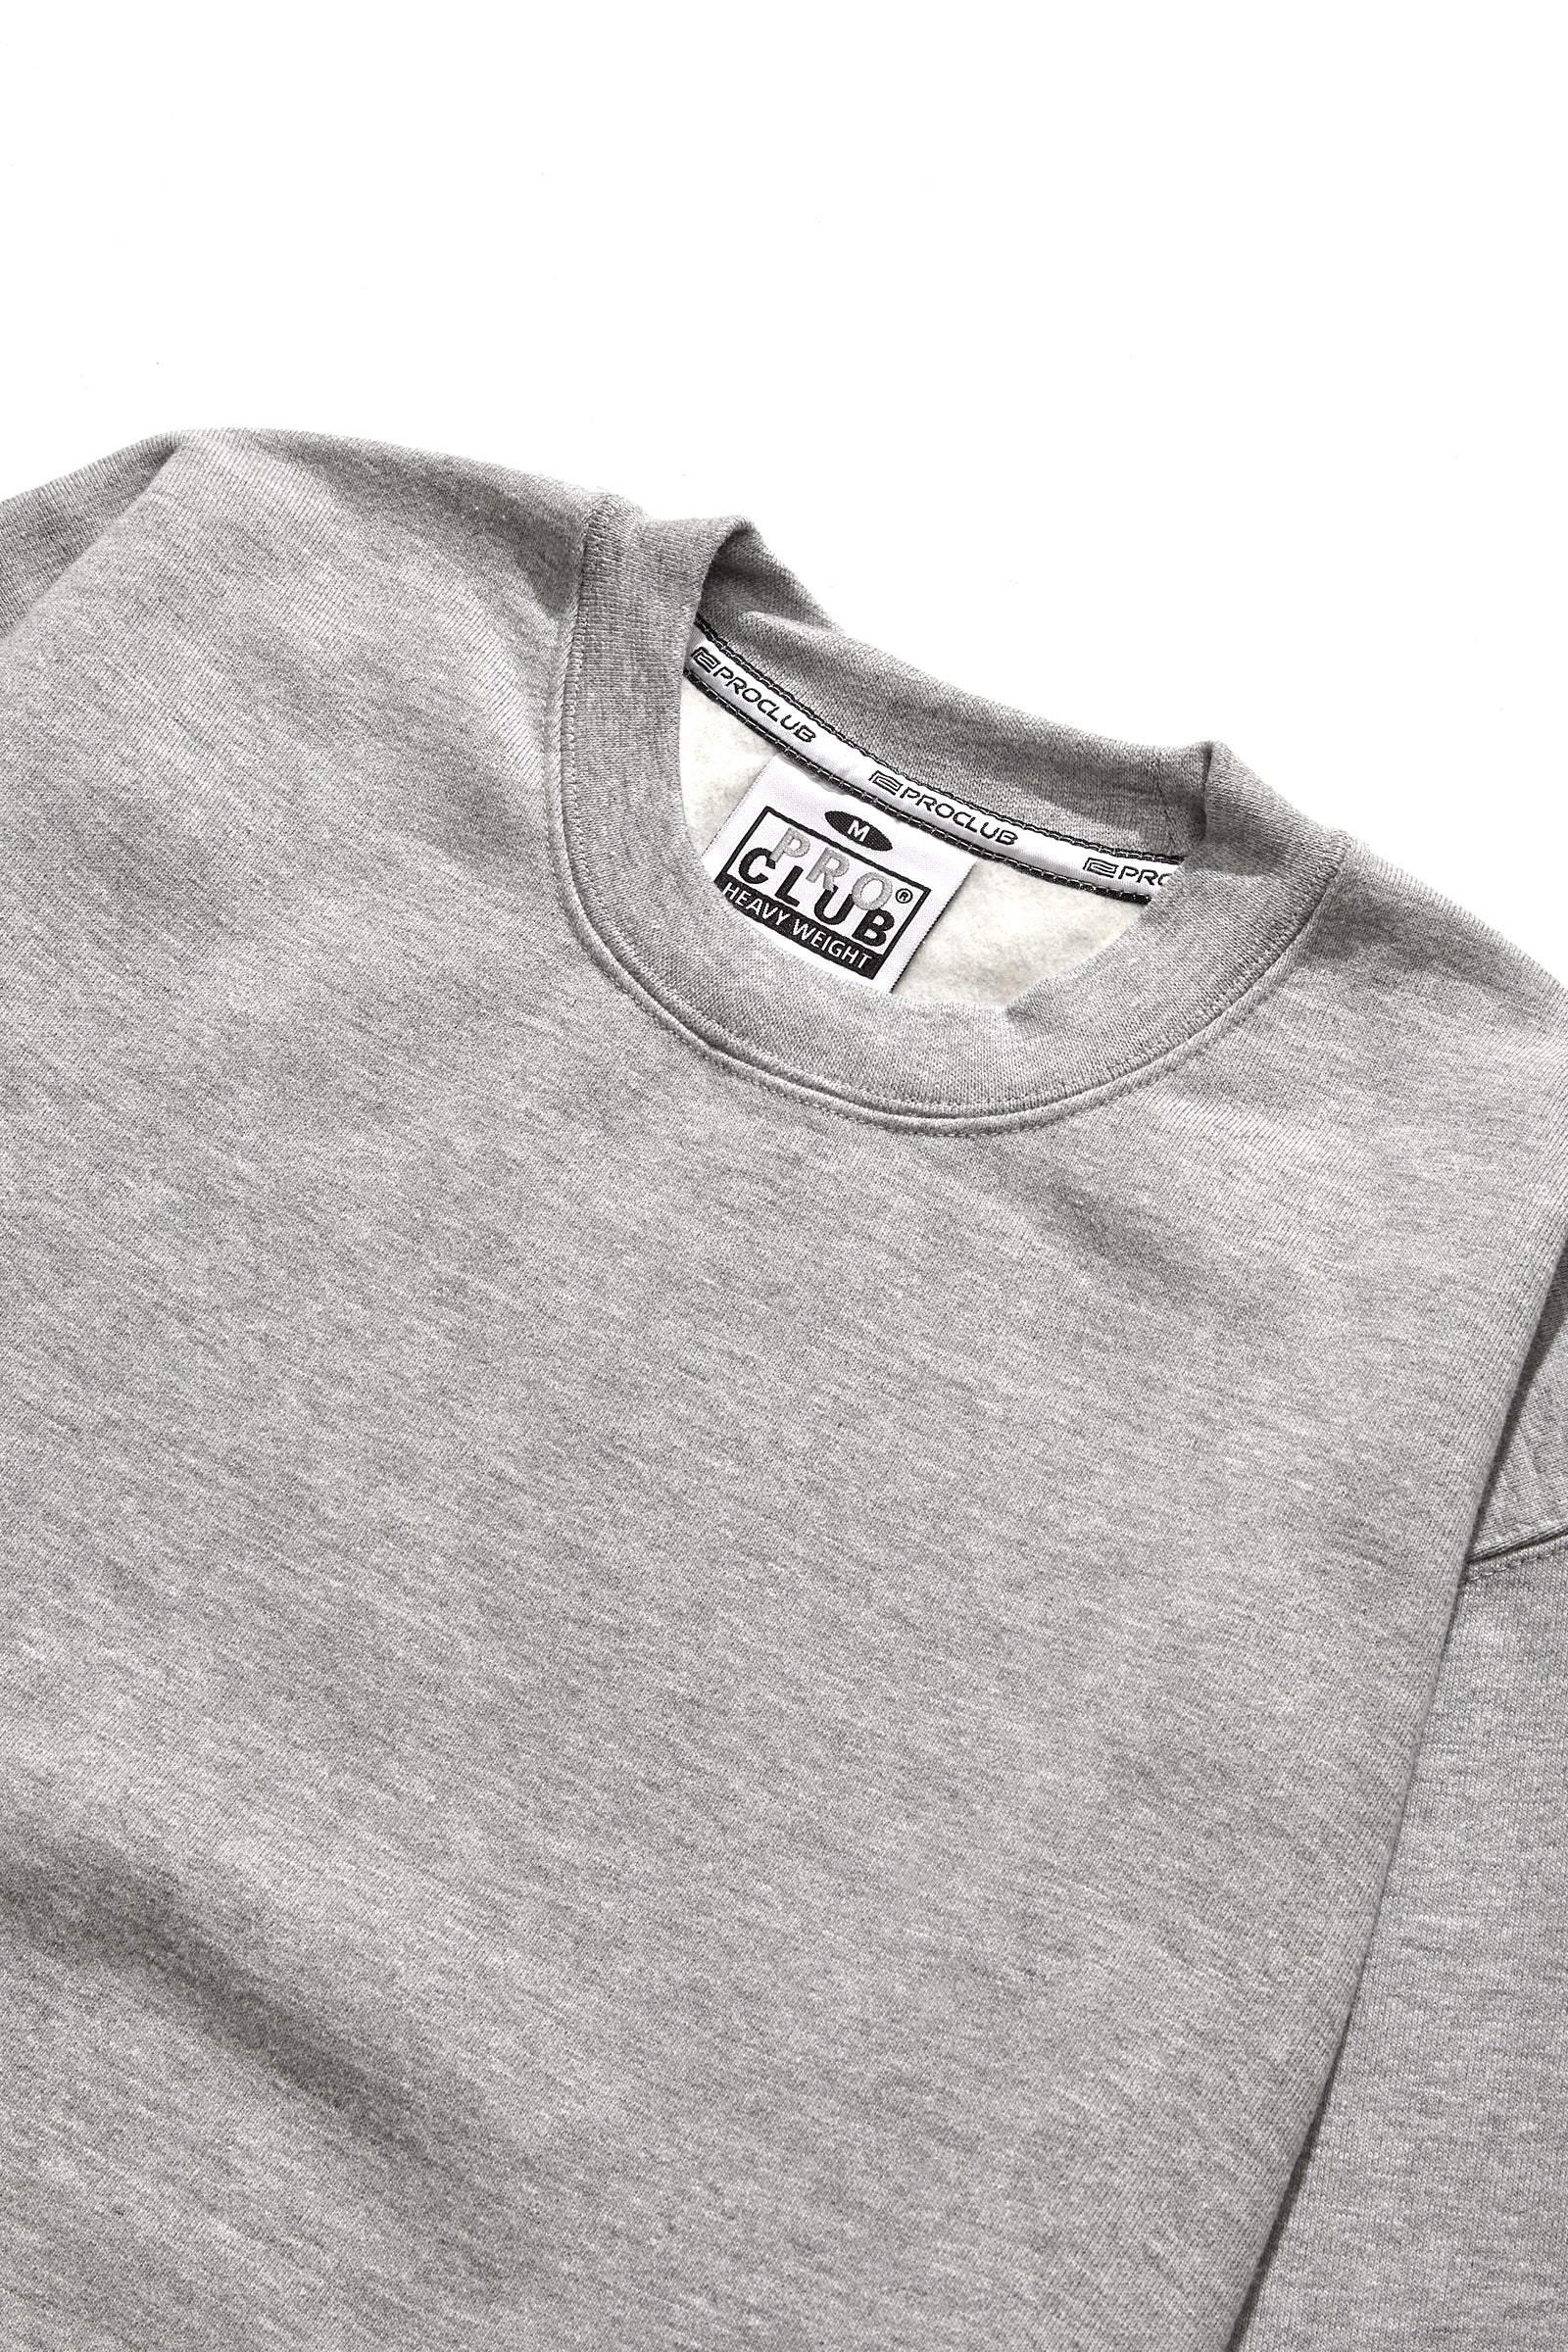 Pro Club - Heavyweight Crewneck Sweatshirt - Heather Grey